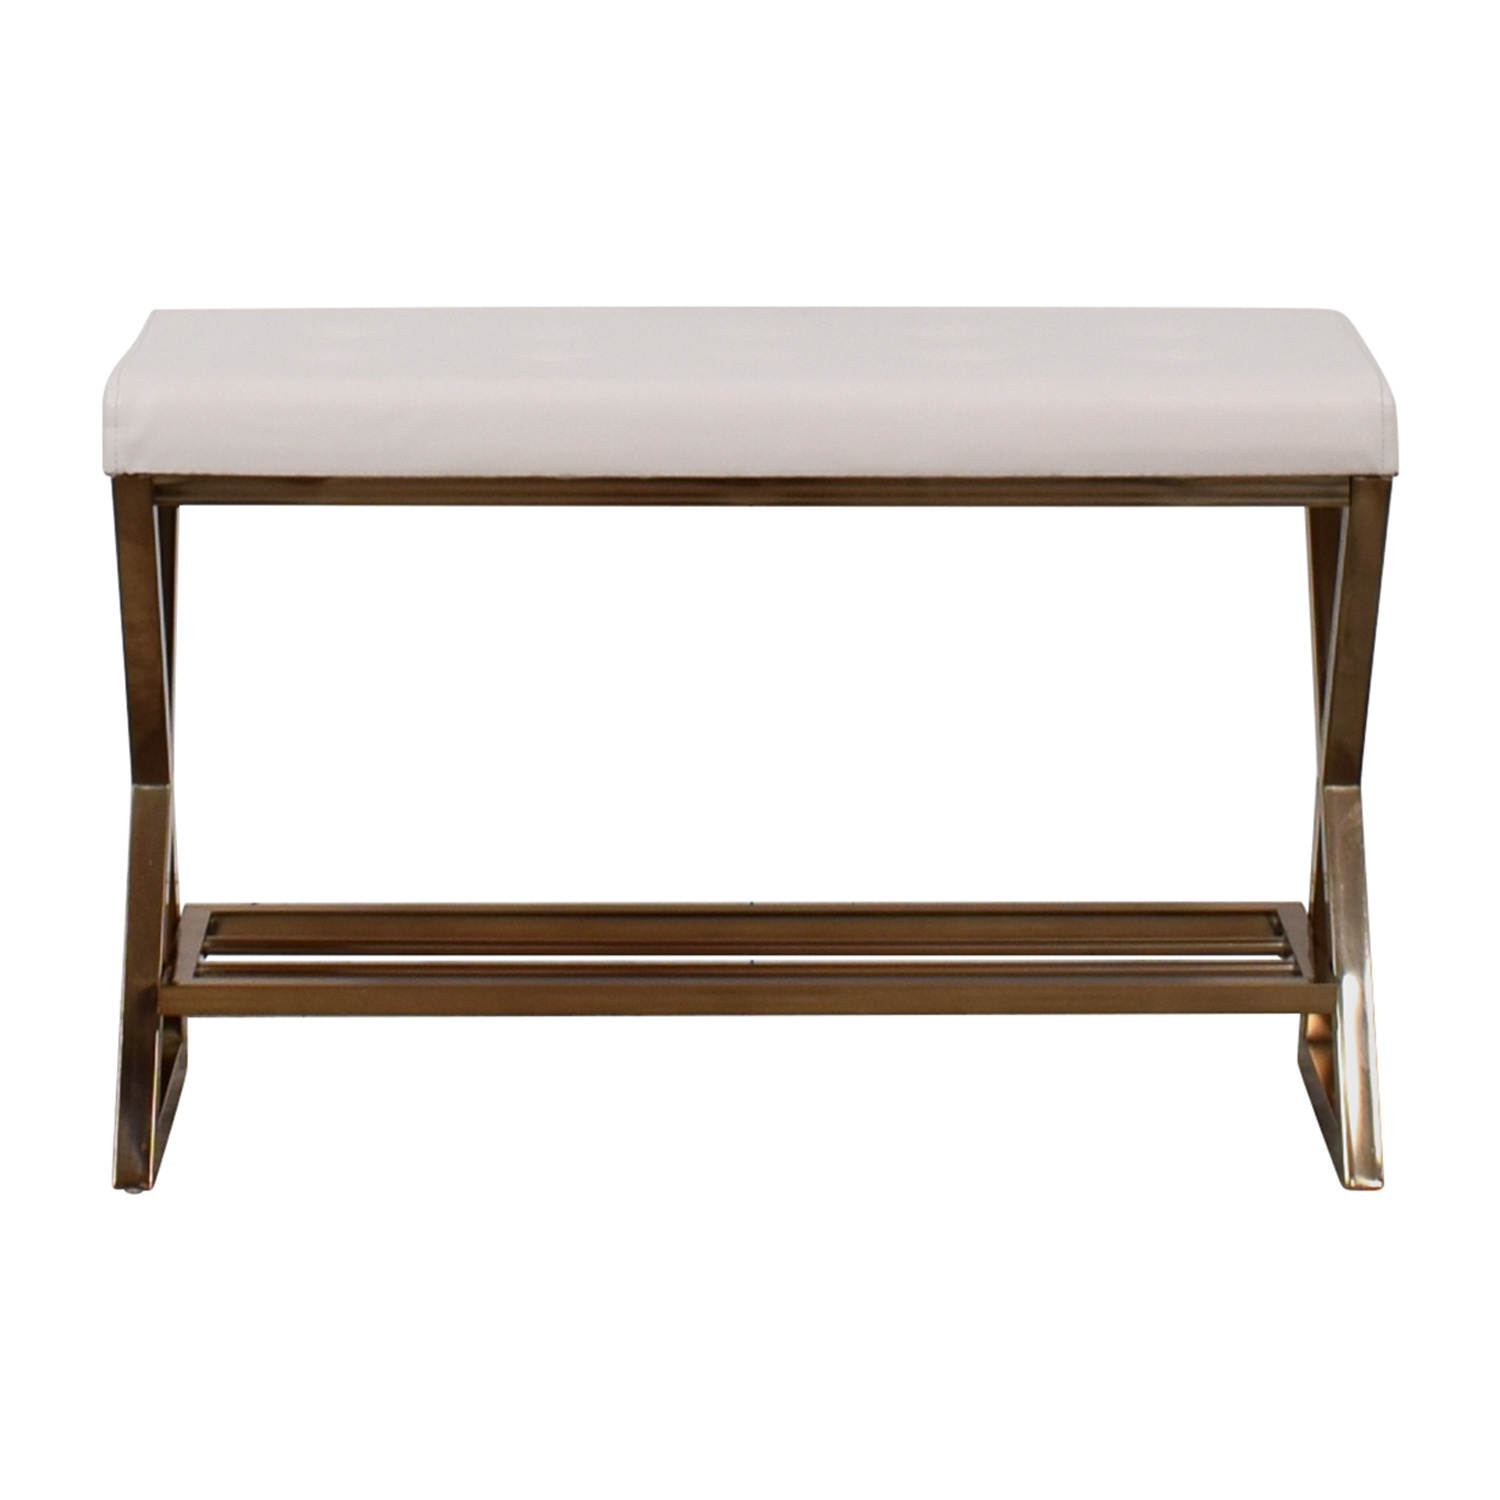 Furniture of America Furniture of America White Tufted Bench Ottomans